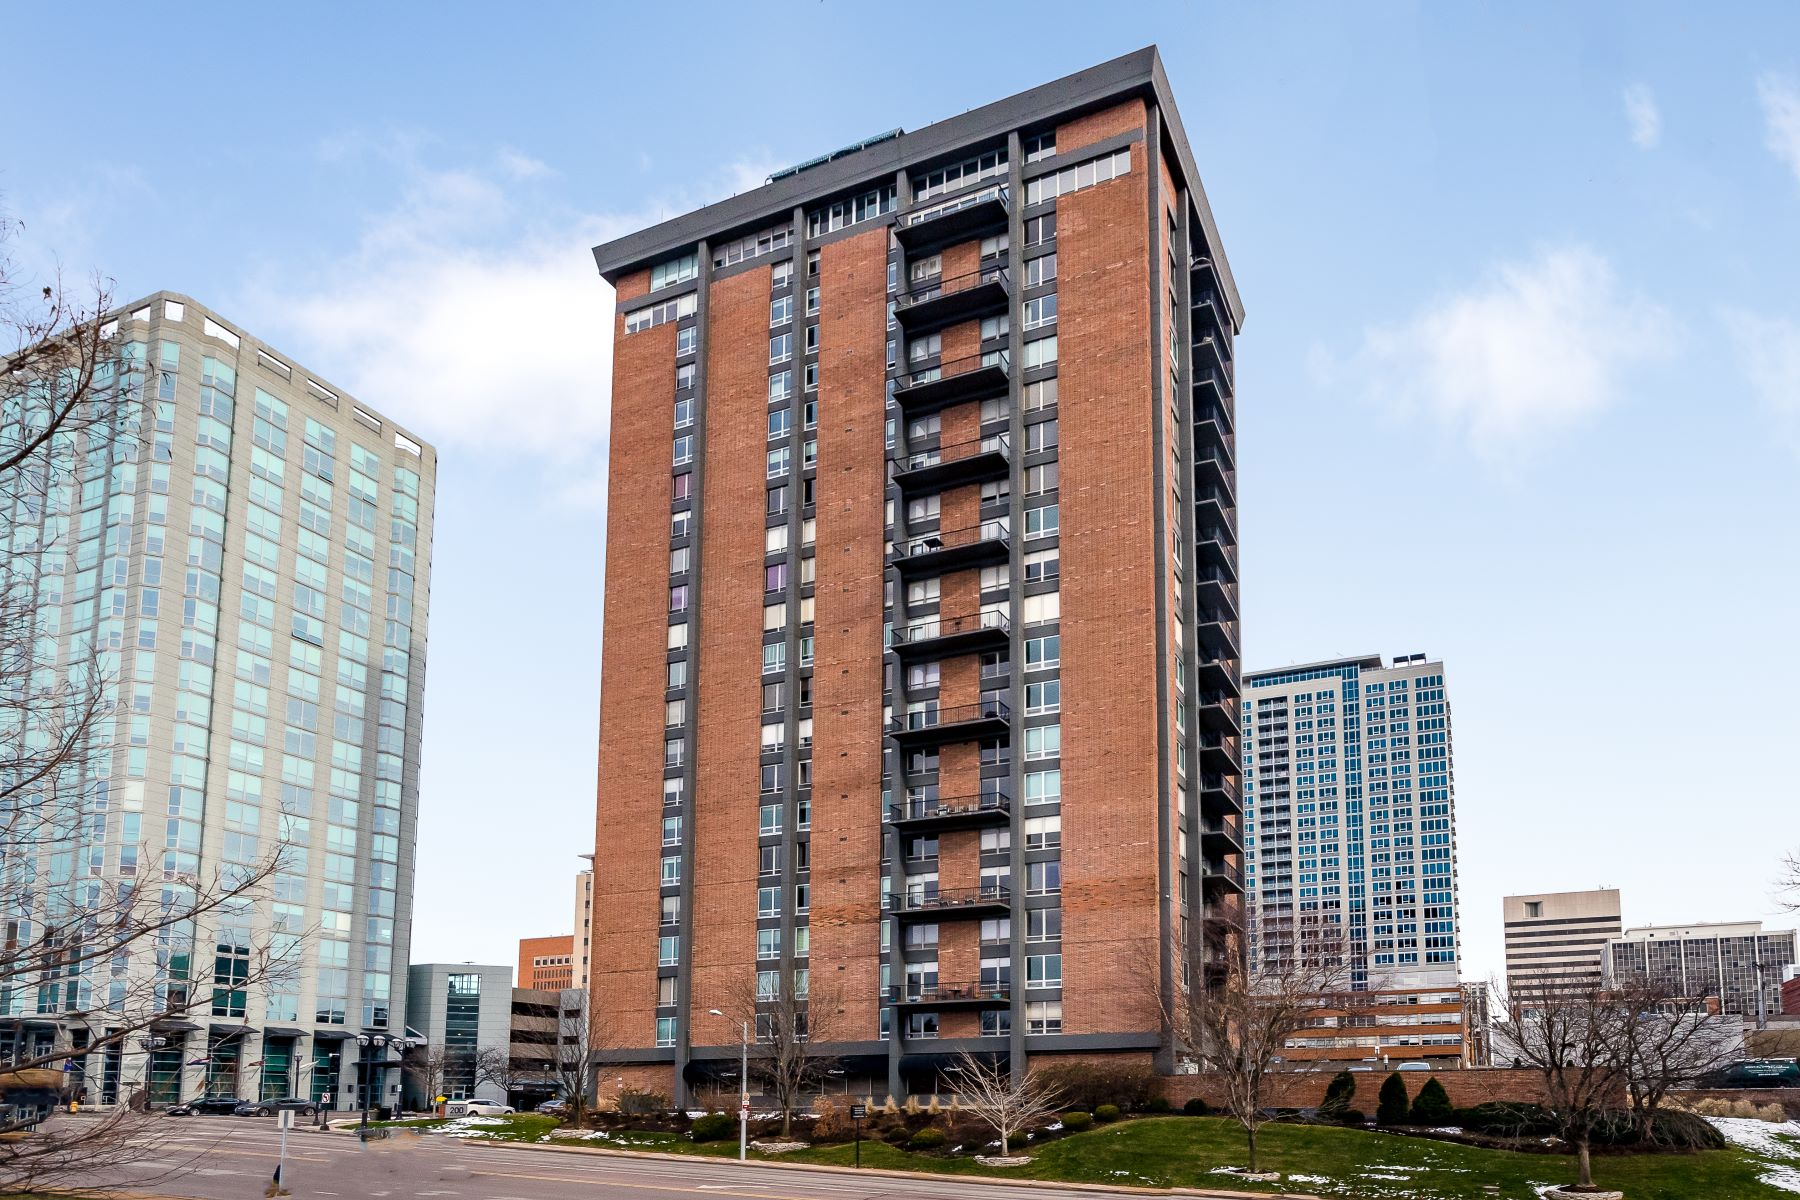 Condominiums for Sale at Park Tower Condominium 200 South Brentwood Boulevard #12F Clayton, Missouri 63105 United States